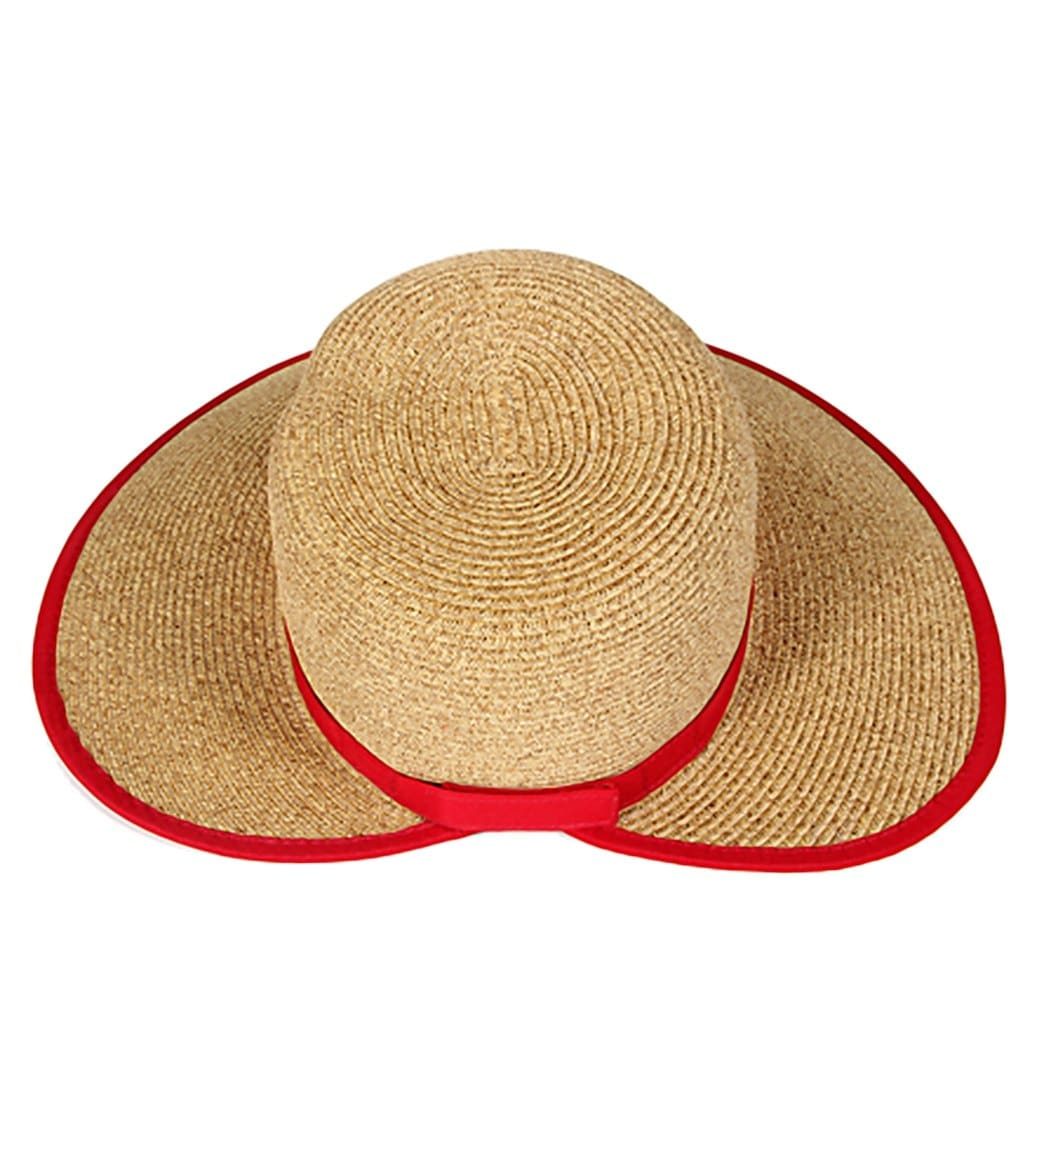 0b6a6bfb8f5 Sun N Sand French Laundry Ribbon Trim Straw Hat at SwimOutlet.com